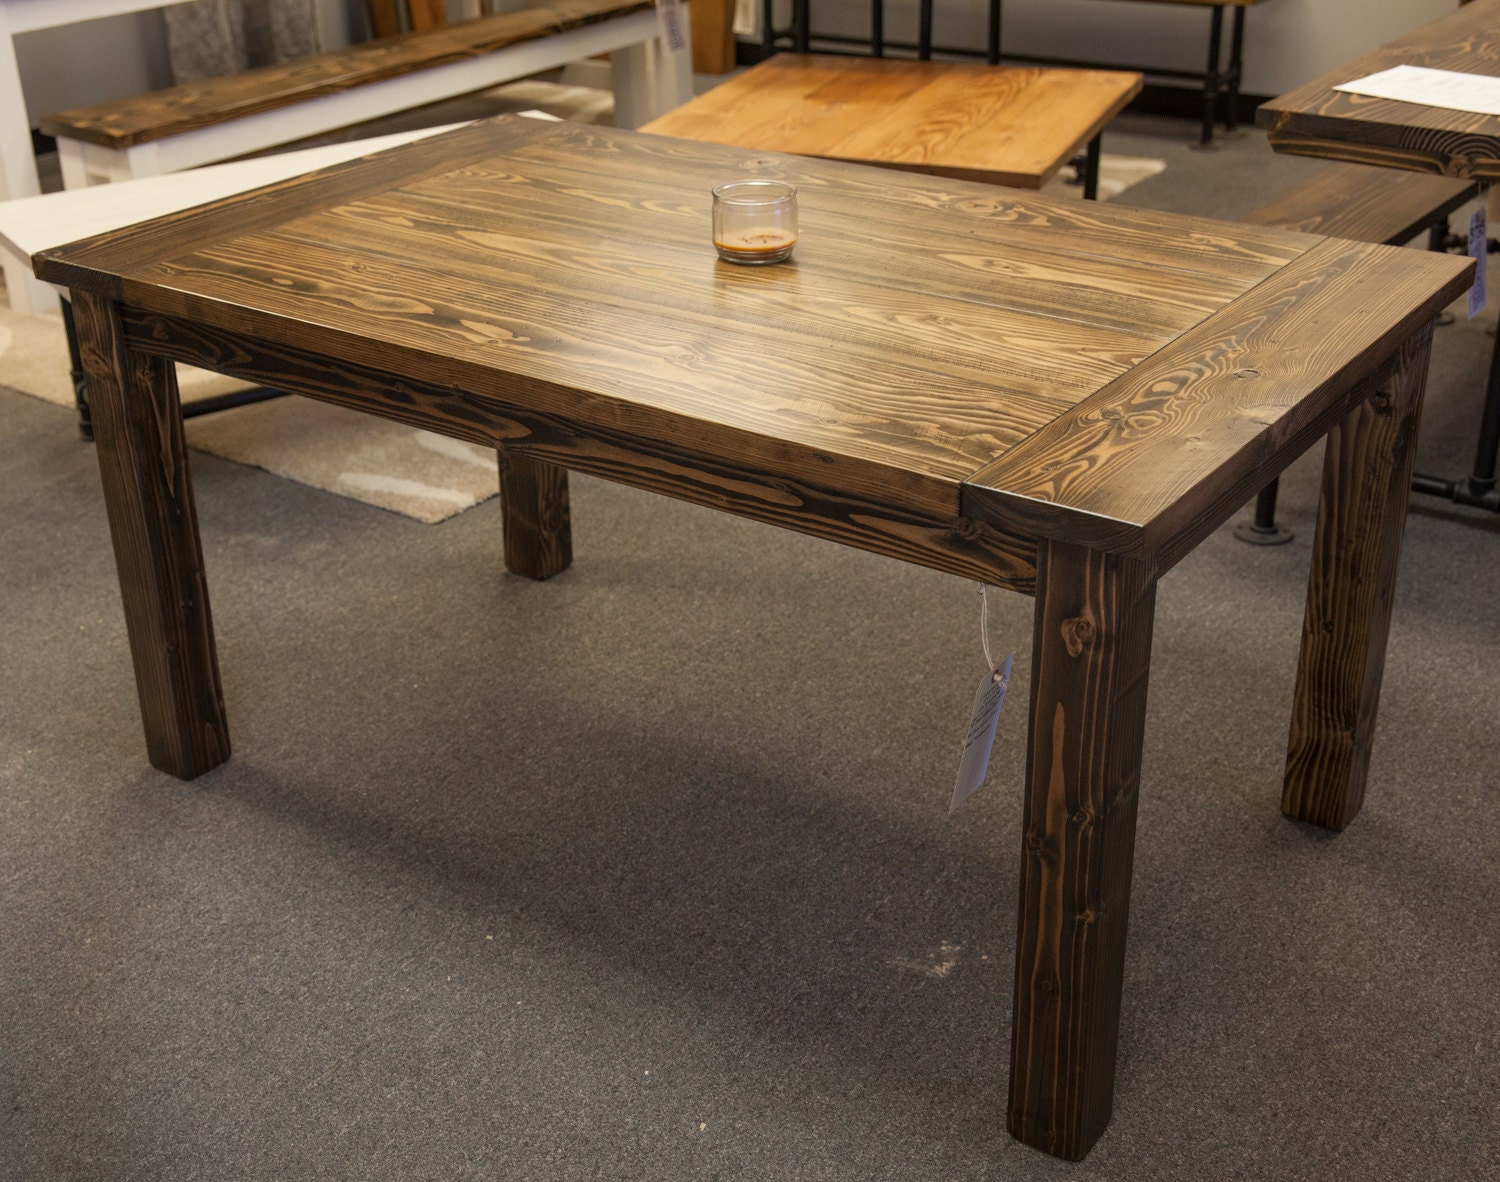 5 Solid Wood Farmhouse Table with Breadboards by EmmorWorks